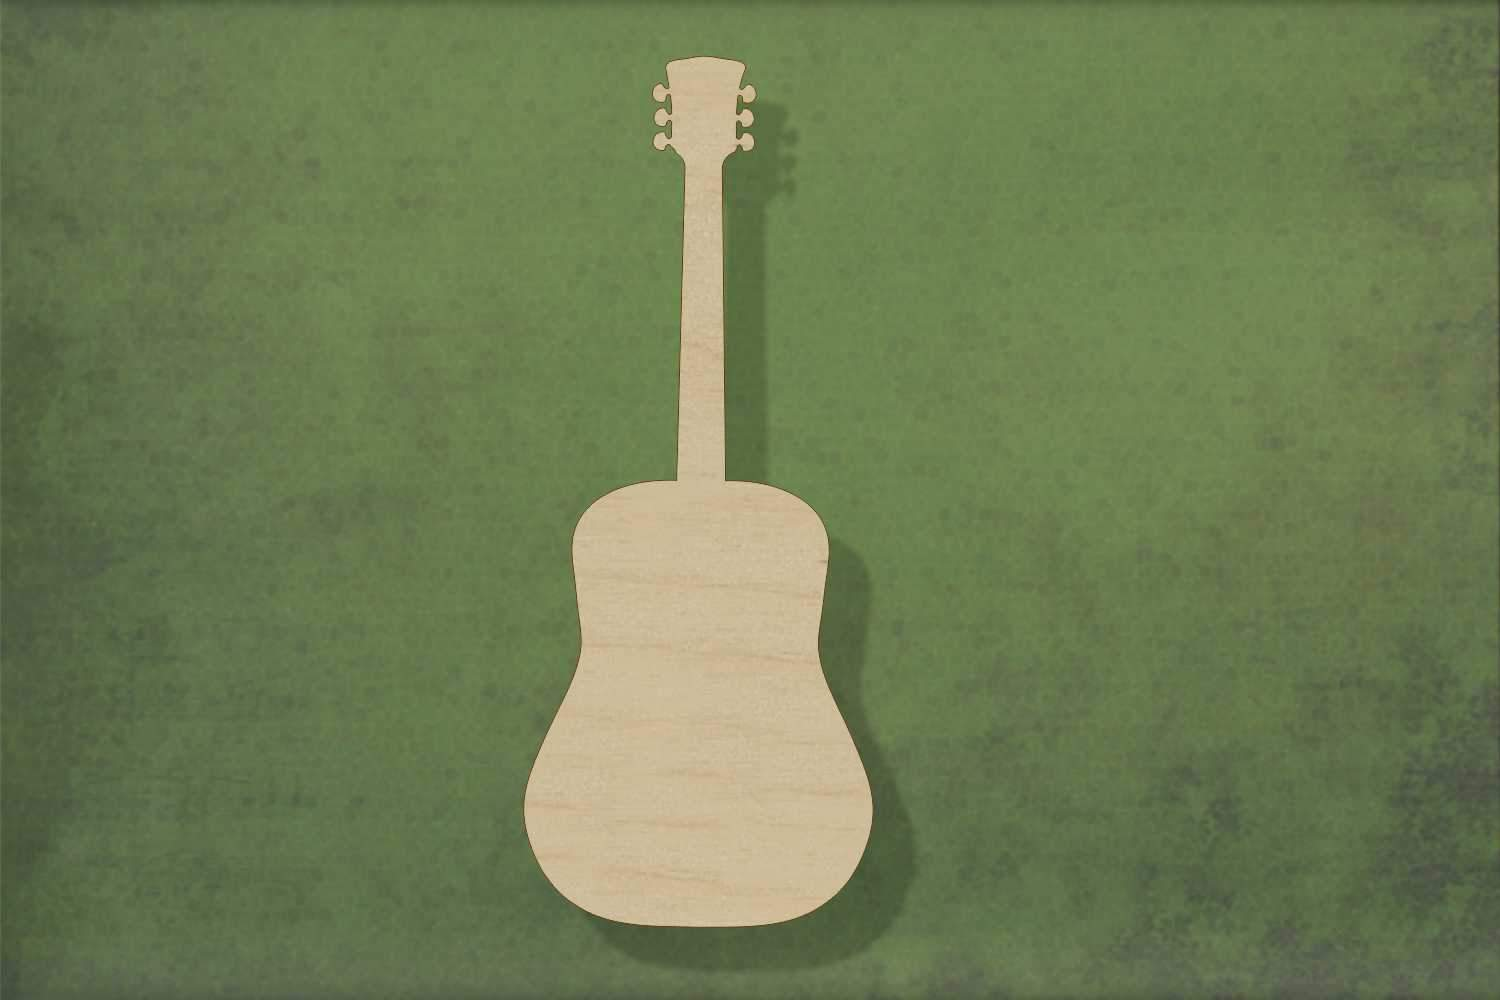 Laser cut, blank wooden acoustic guitar shape for craft